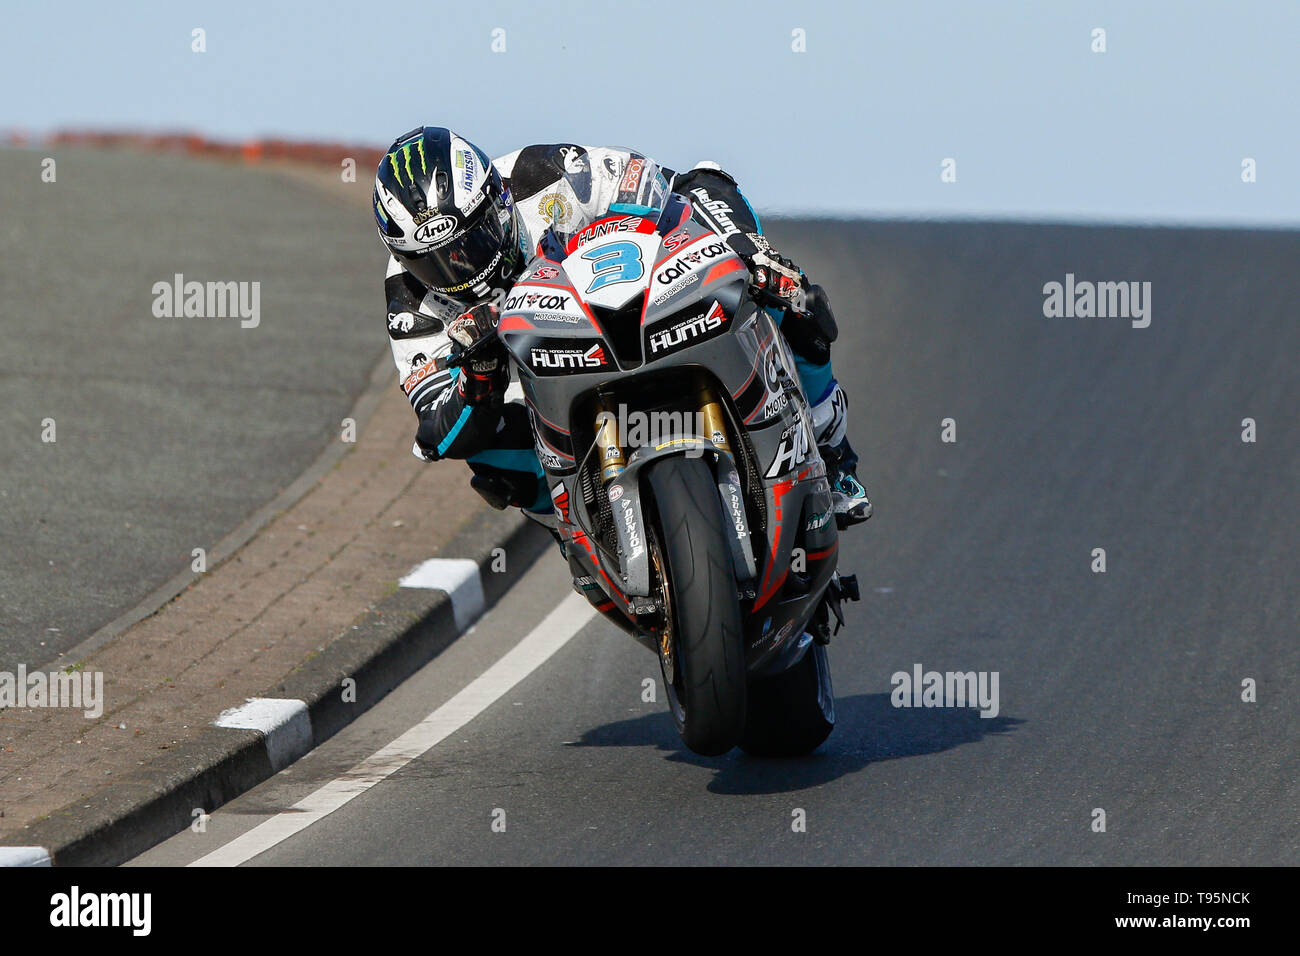 Portrush, Northern Ireland. 16th May, 2019. International North West 200 Motorcycle road racing, Thursday practice and evening racing; Michael Dunlop (MD Racing Honda) in action during the SuperSport race Credit: Action Plus Sports/Alamy Live News - Stock Image